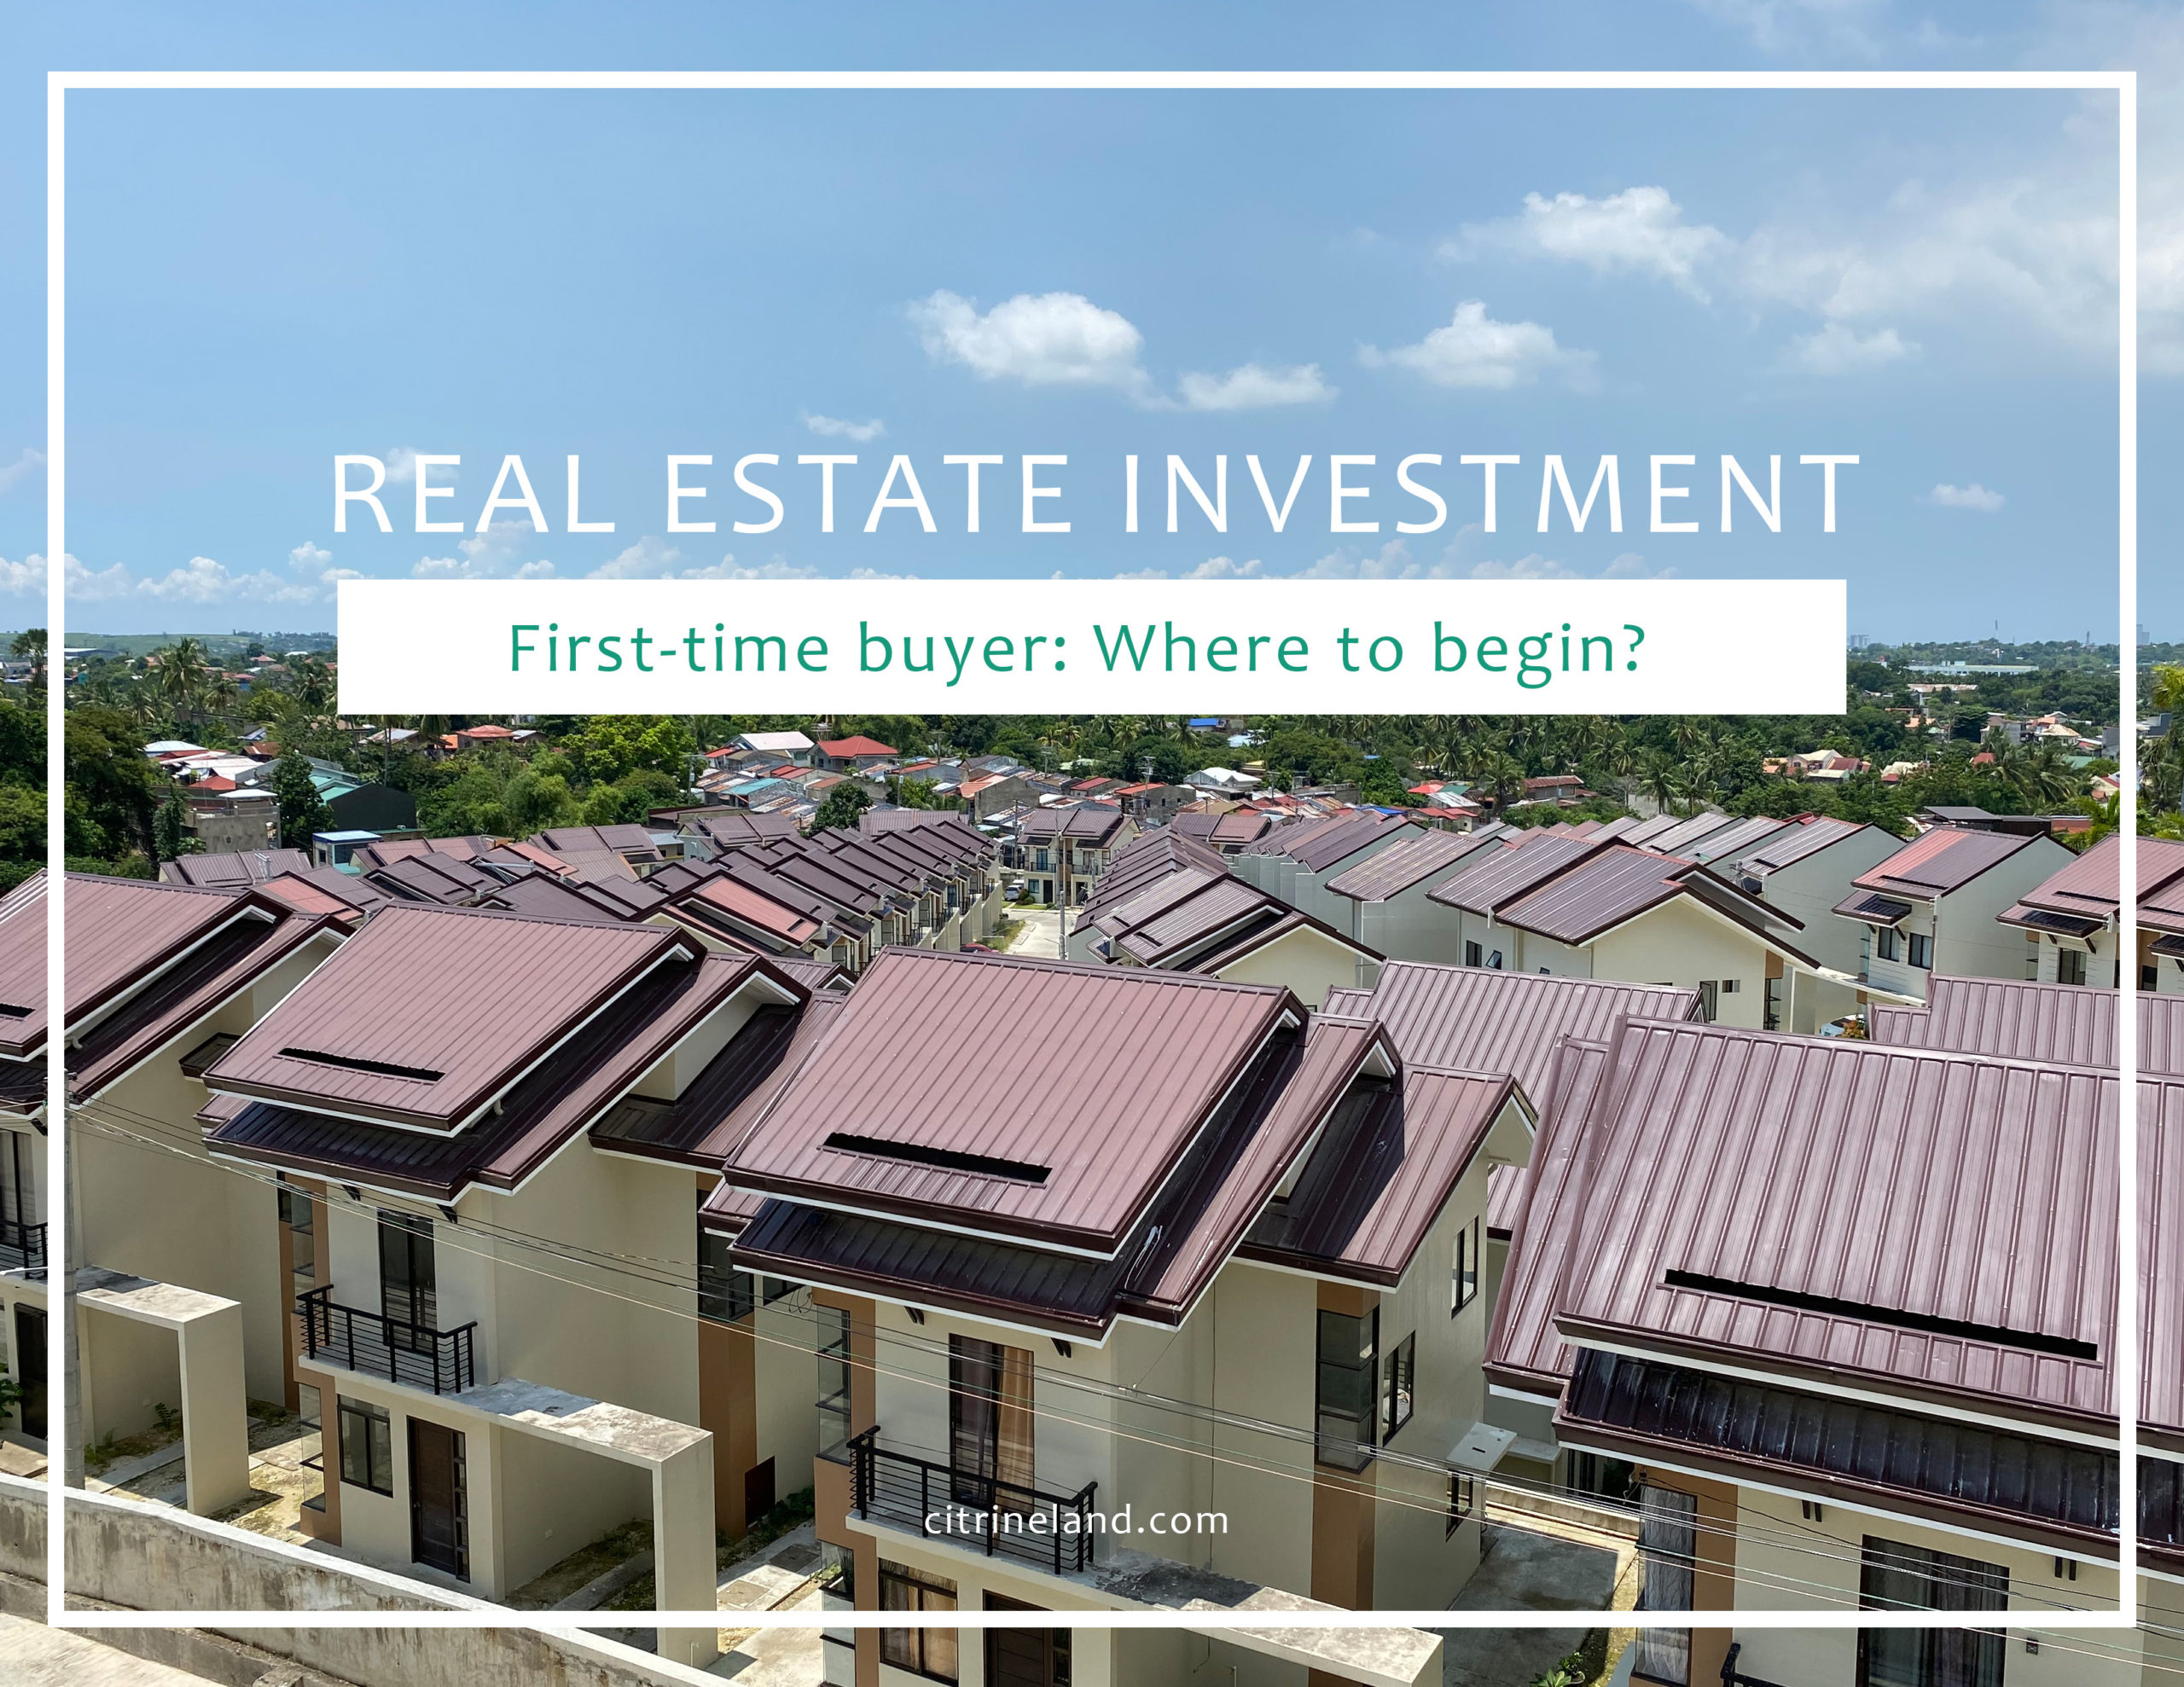 First-time Buyer's Guide For Real Estate Investment